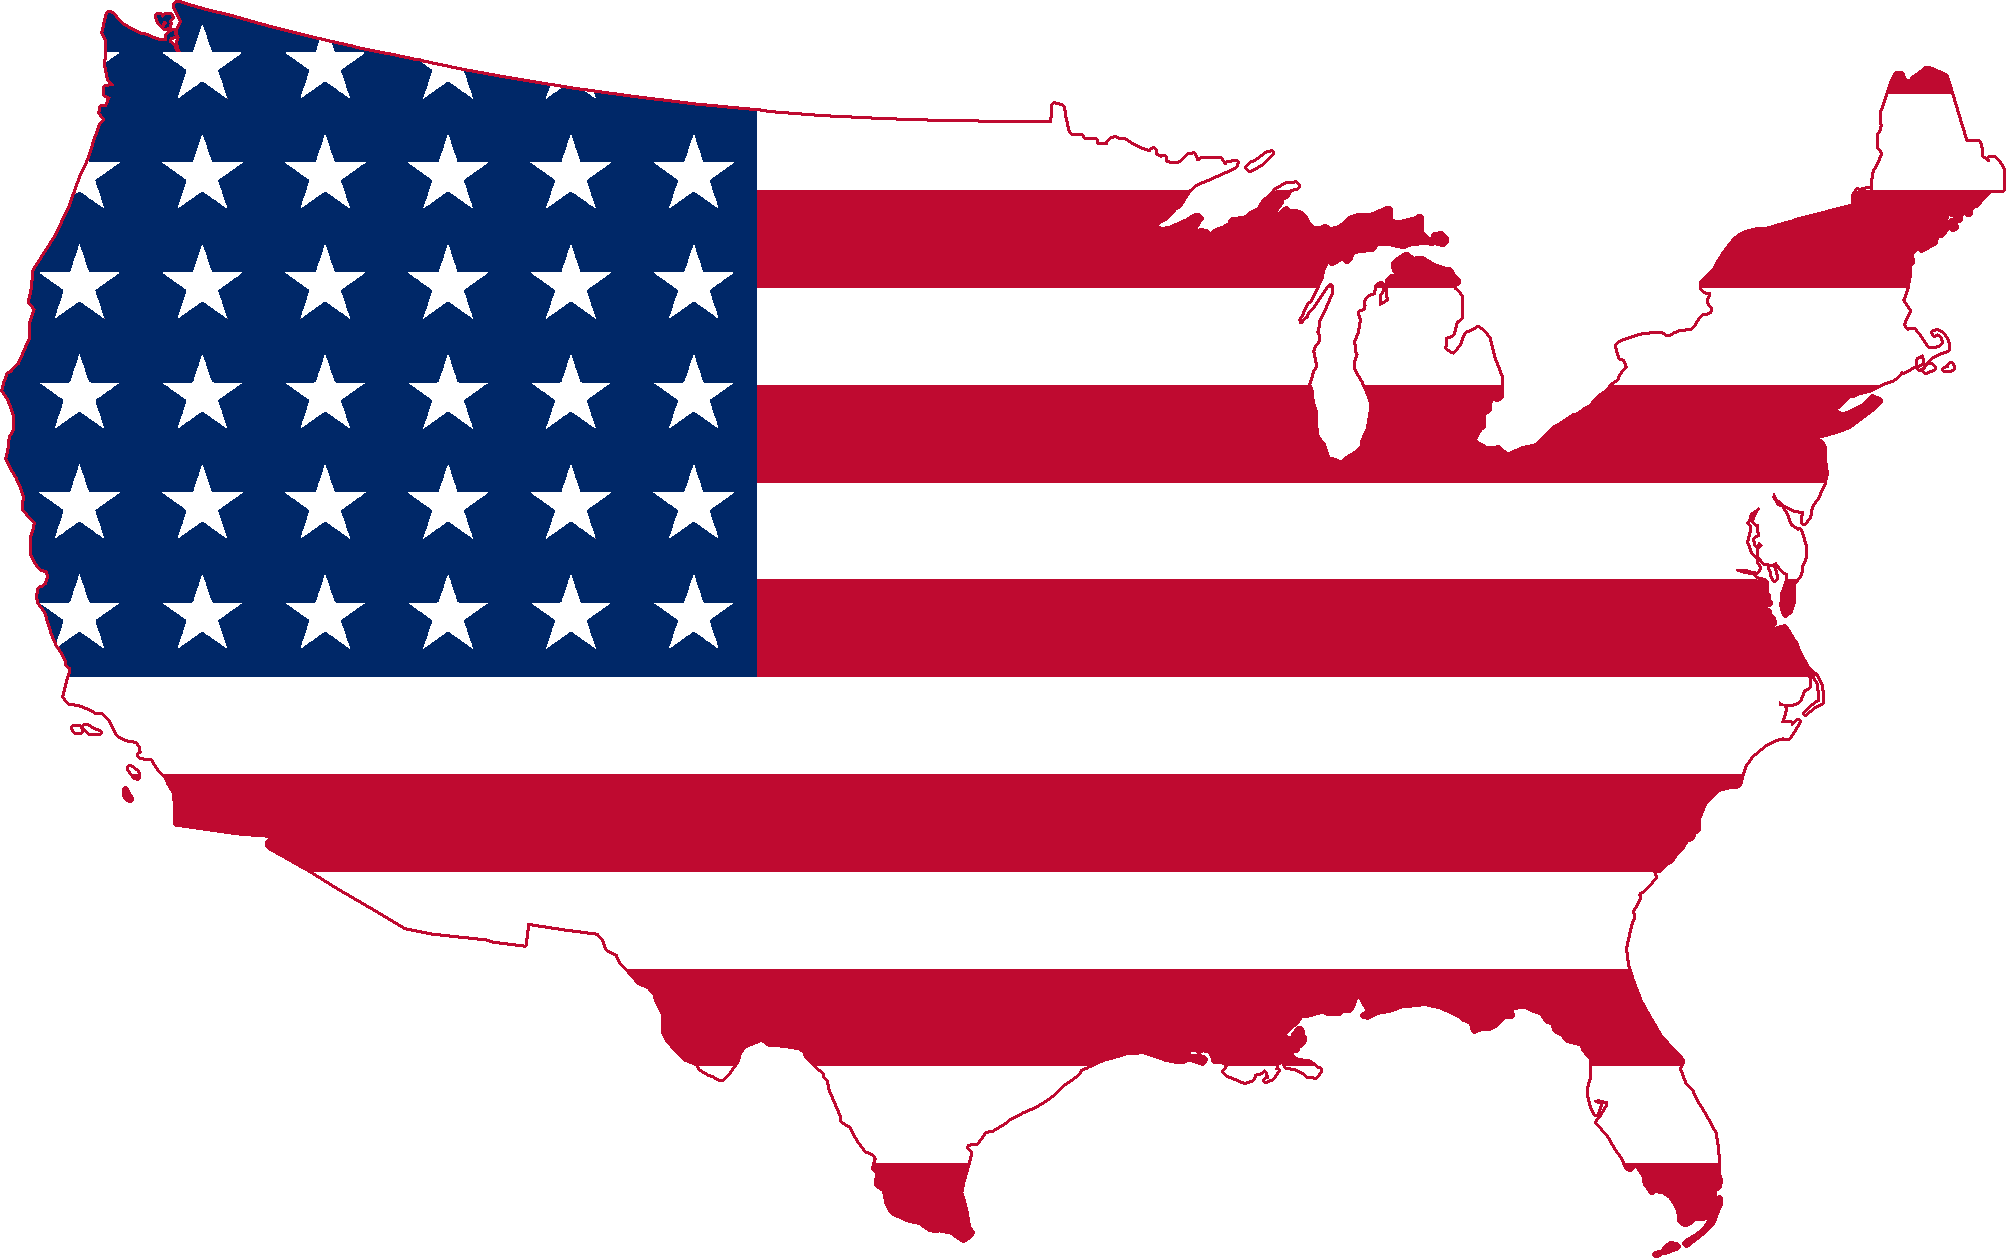 Courtesy of Wikimedia, labeled for reuse: https://upload.wikimedia.org/wikipedia/commons/4/46/Flag_Map_of_the_United_States_(1912_-_1959).png